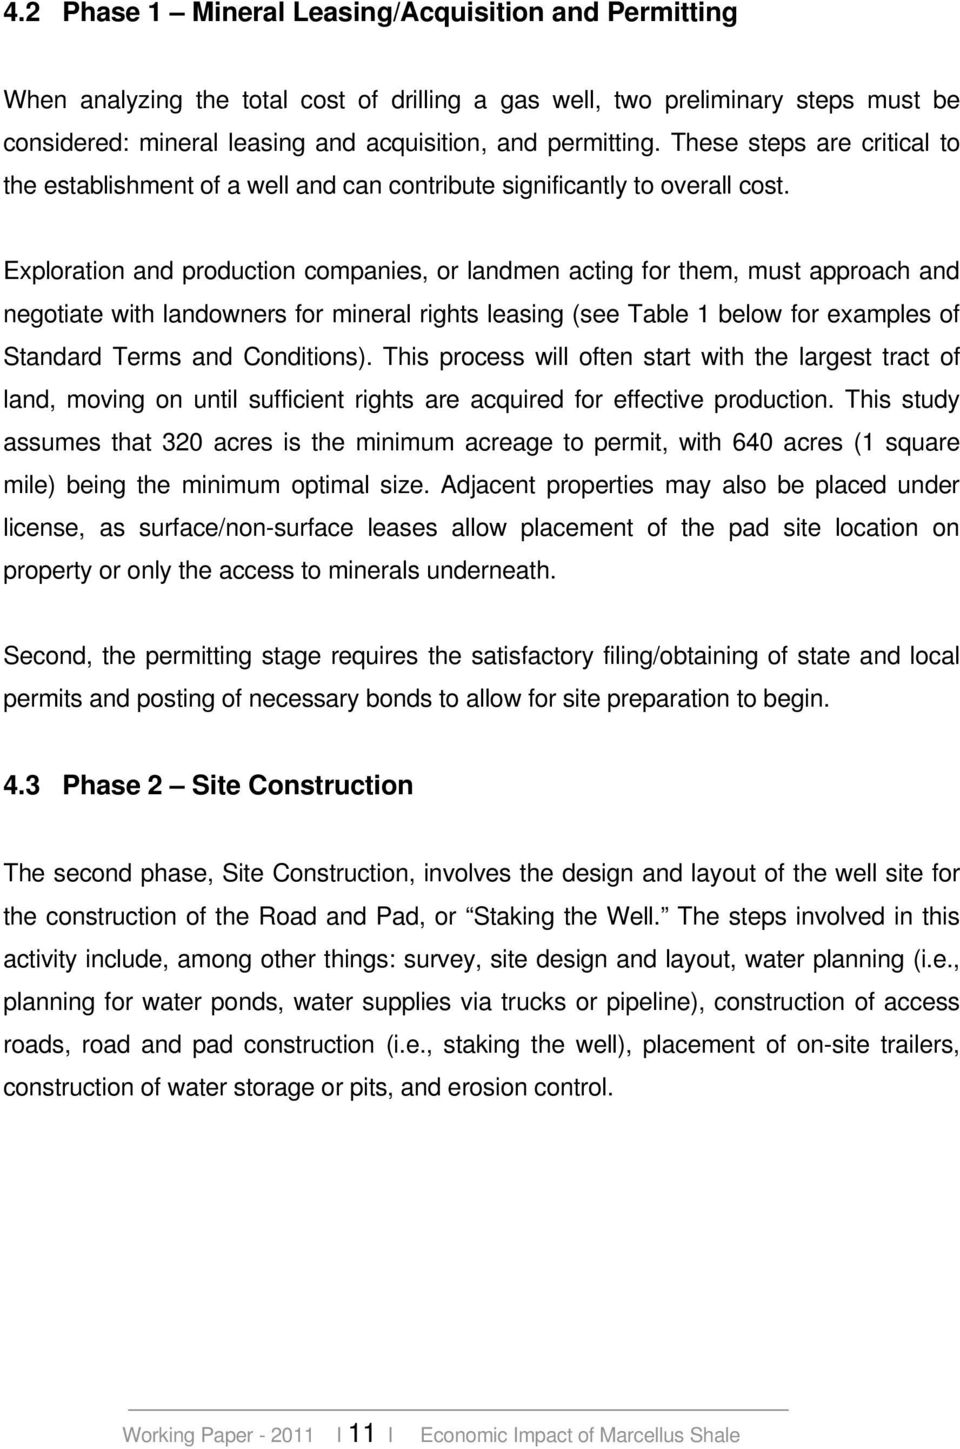 Exploration and production companies, or landmen acting for them, must approach and negotiate with landowners for mineral rights leasing (see Table 1 below for examples of Standard Terms and